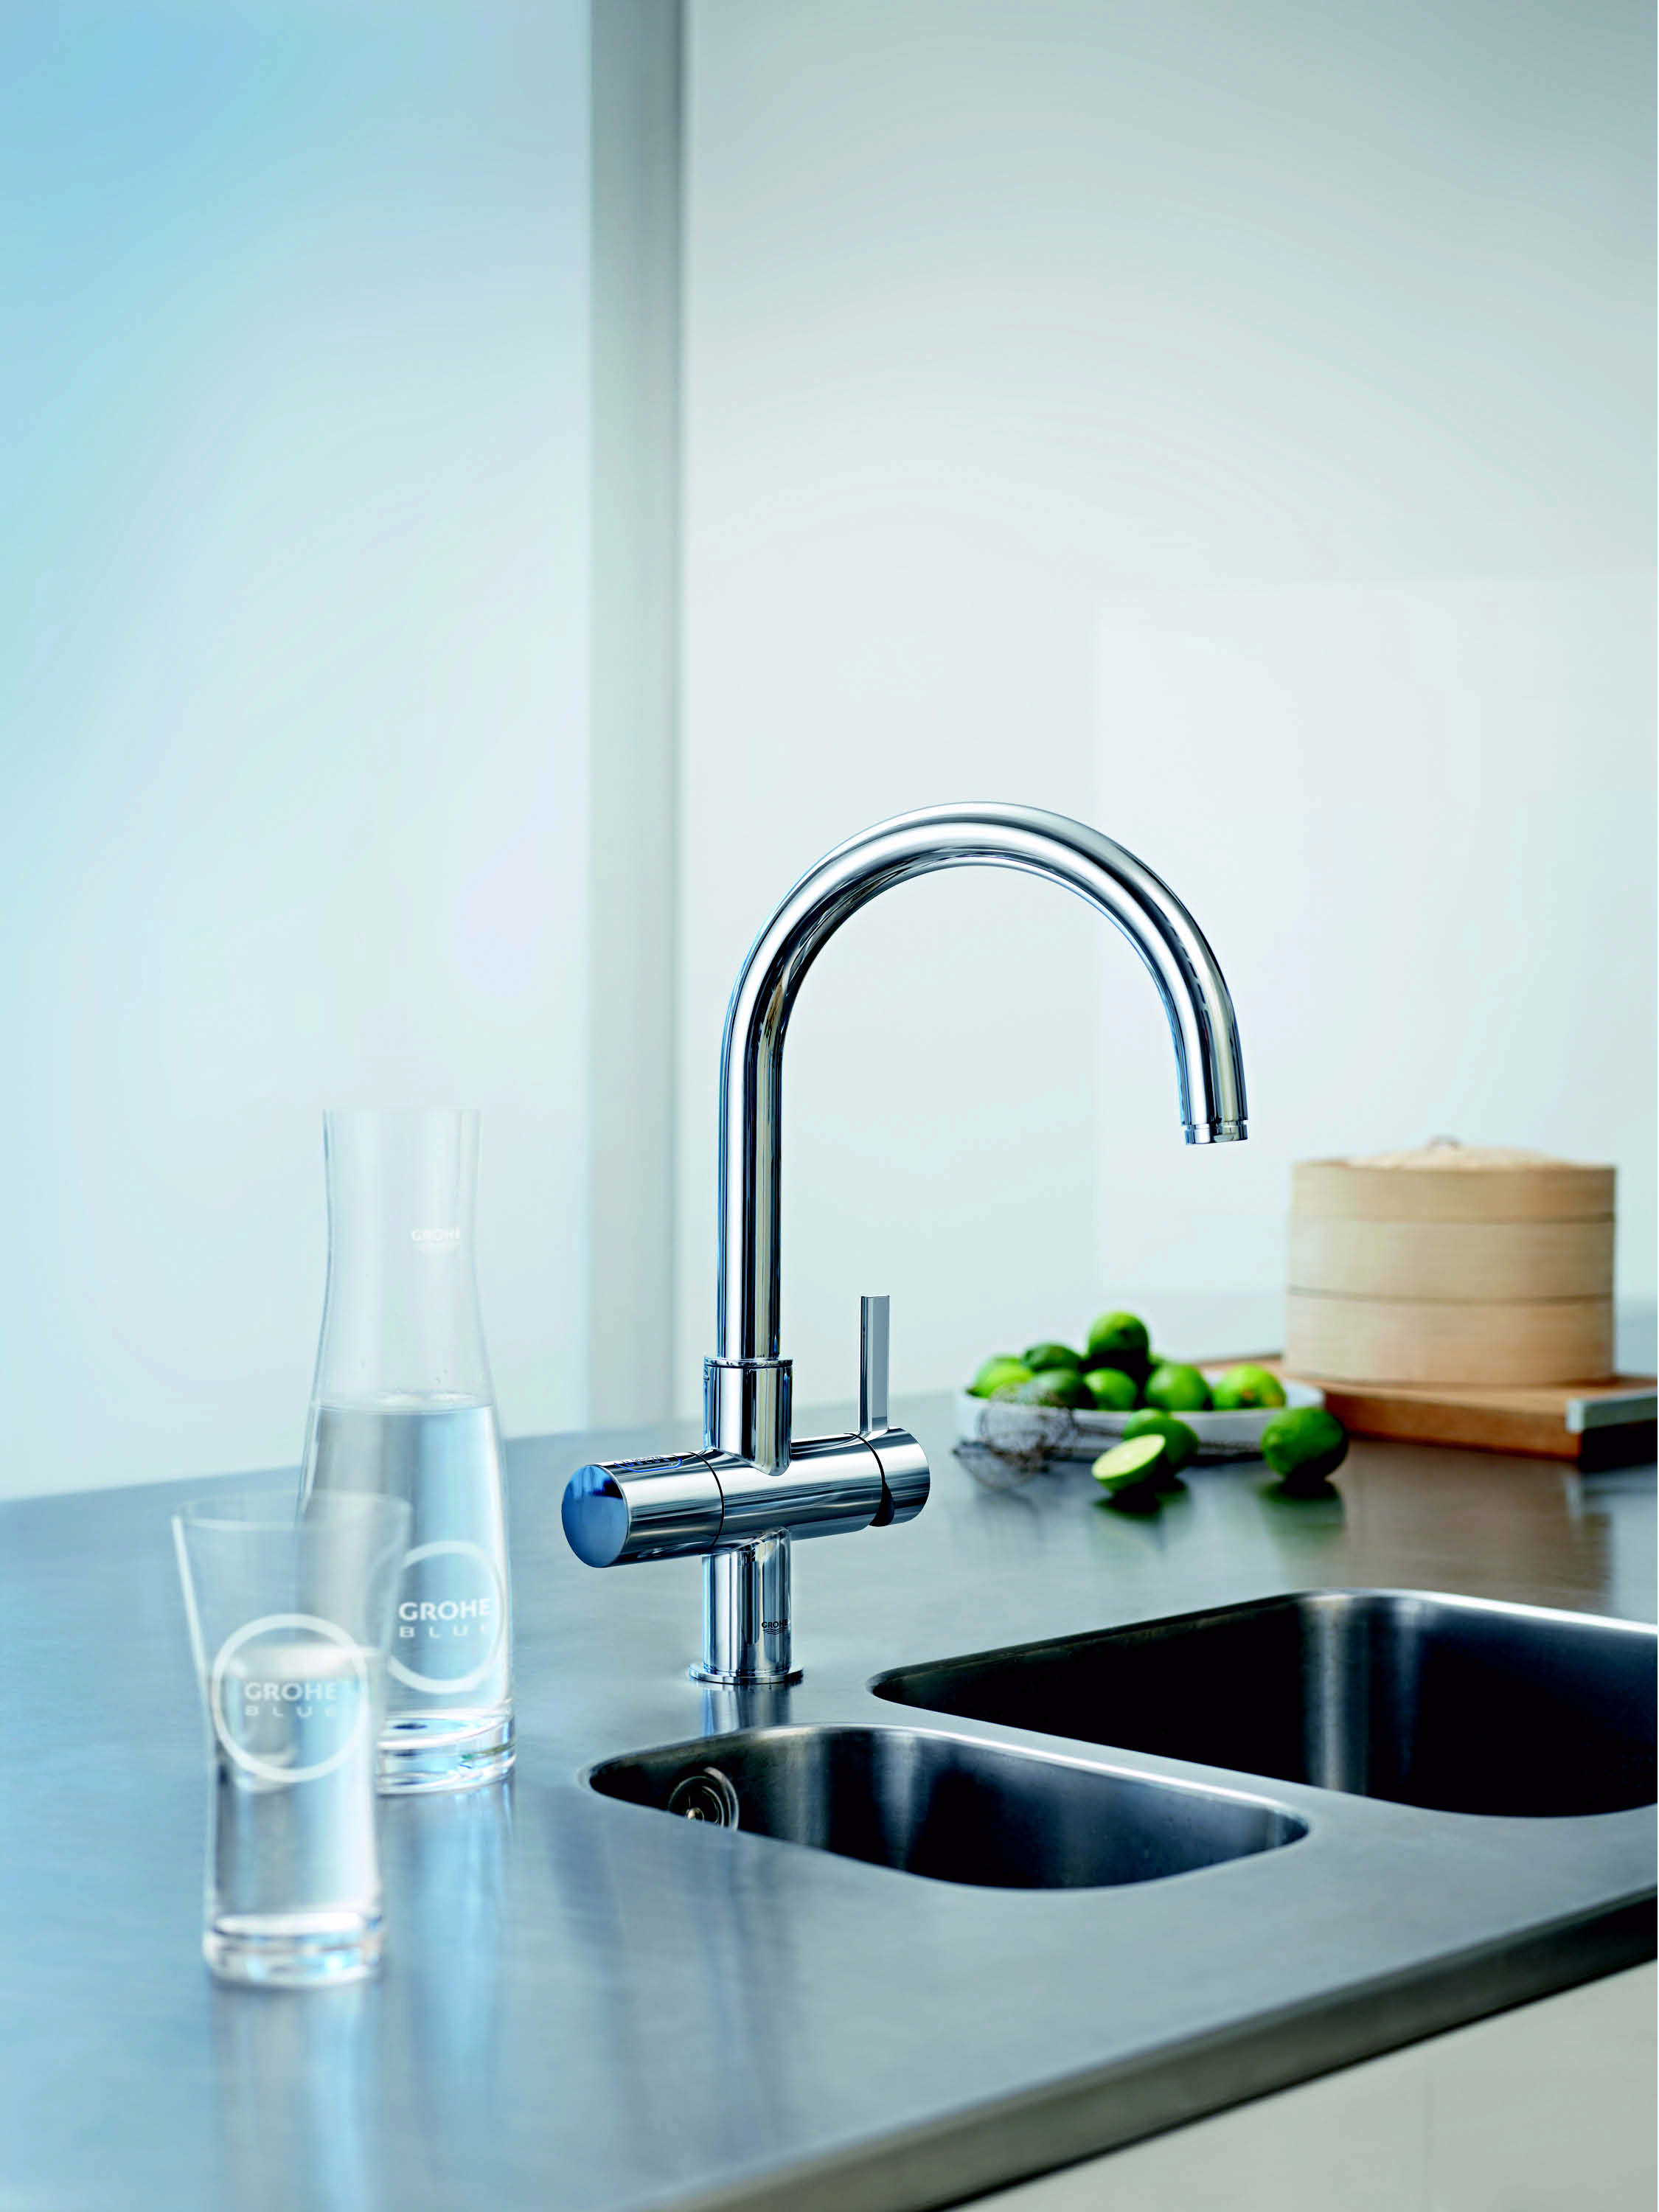 grohe europlus ii kitchen faucet parts hansgrohe kitchen faucets Grohe Faucets Southnext Us Grohe Europlus Kitchen Faucet